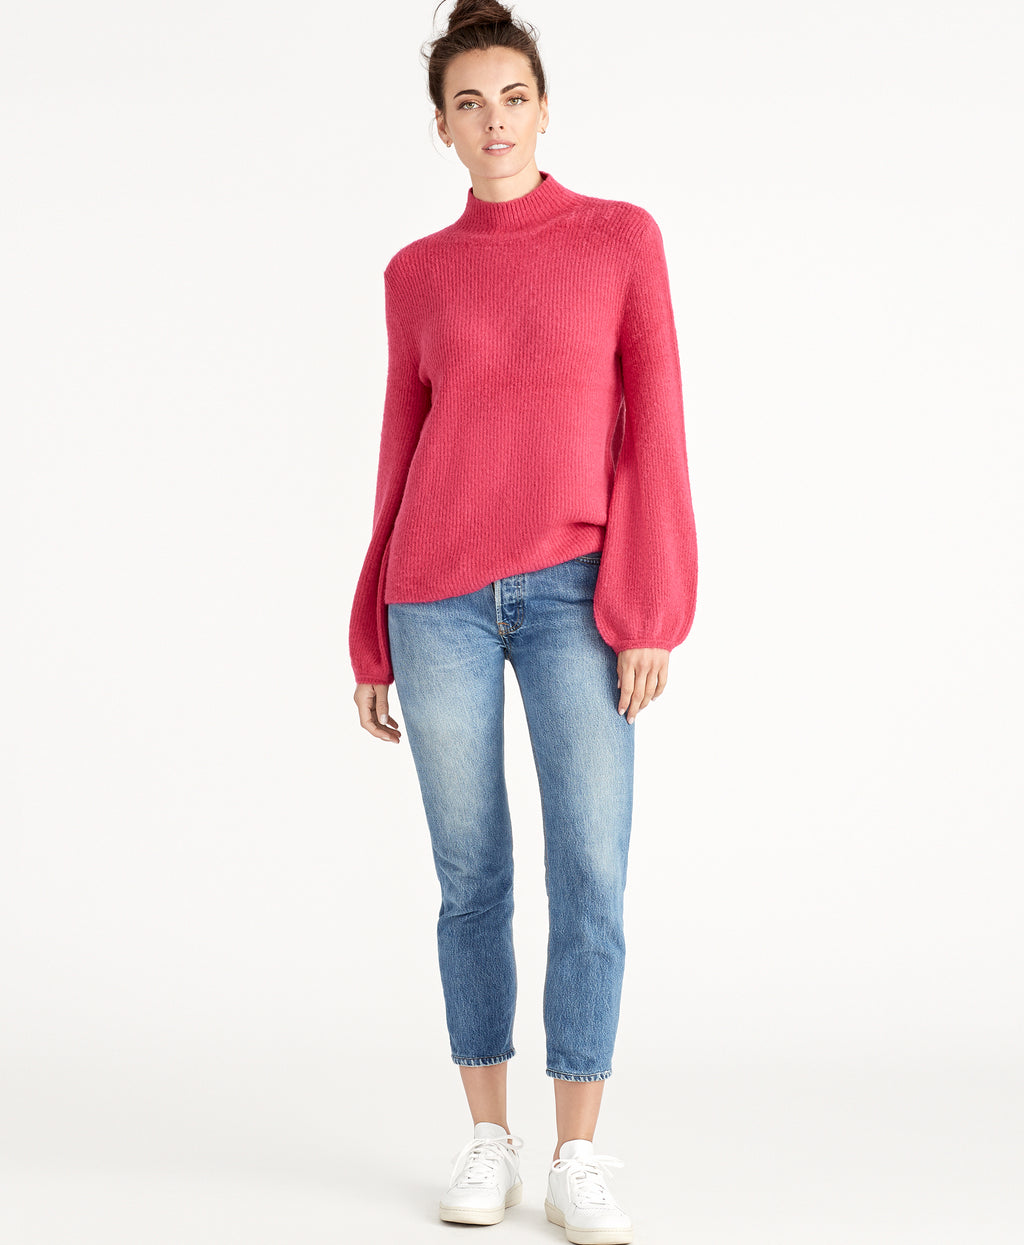 SHAYLA SWEATER | PINK LOTUS